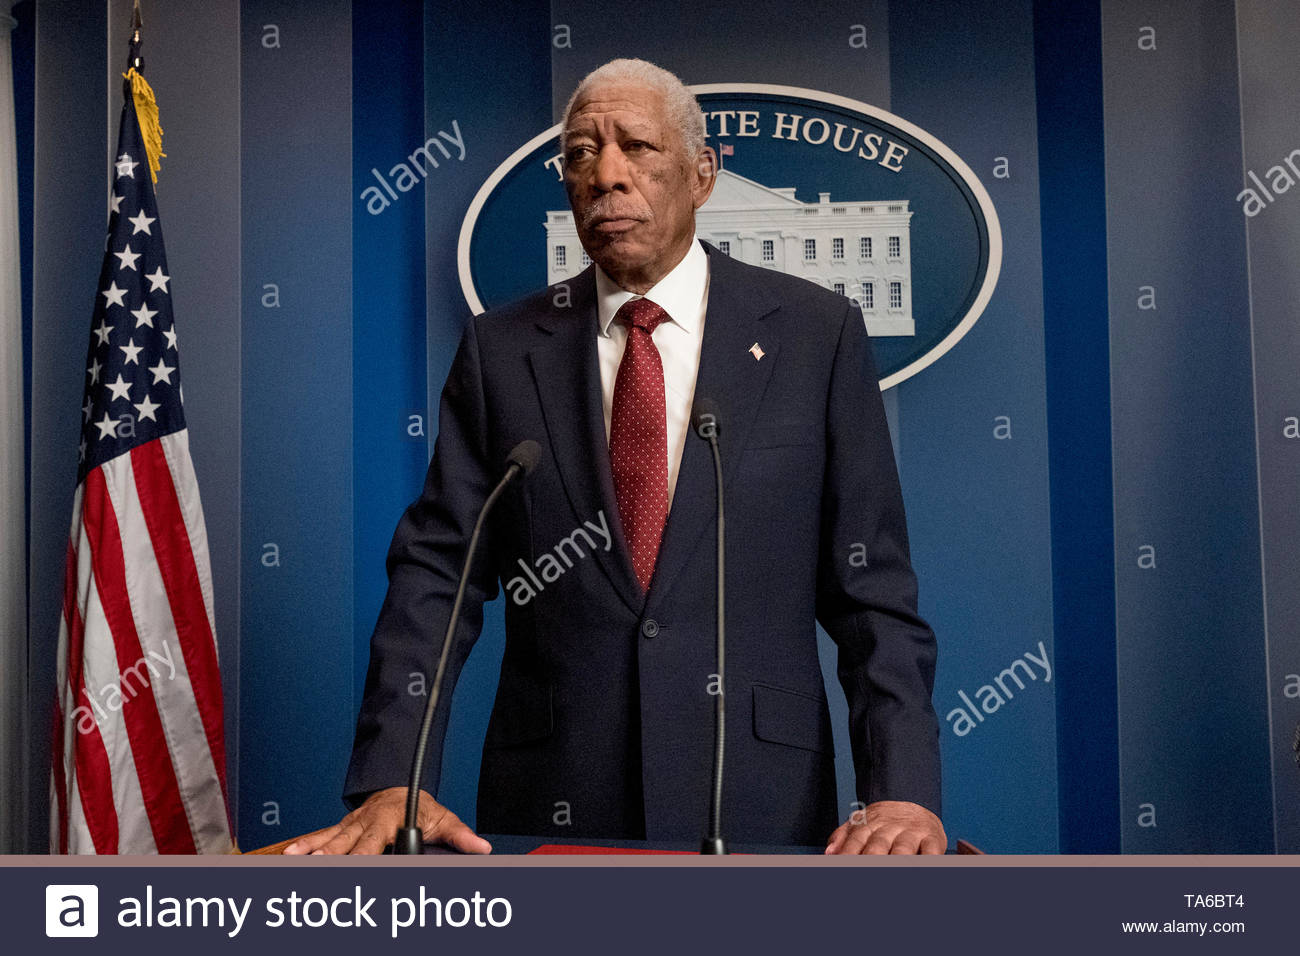 RELEASE DATE: August 23, 2019 TITLE: Angel Has Fallen STUDIO: Summit Entertainment DIRECTOR: Ric Roman Waugh PLOT: Secret Service Agent Mike Banning is framed for the attempted assassination of the President and must evade his own agency and the FBI as he tries to uncover the real threat. STARRING: MORGAN FREEMAN as Allan Trumbull. (Credit Image: © Summit Entertainment/Entertainment Pictures) Stock Photo